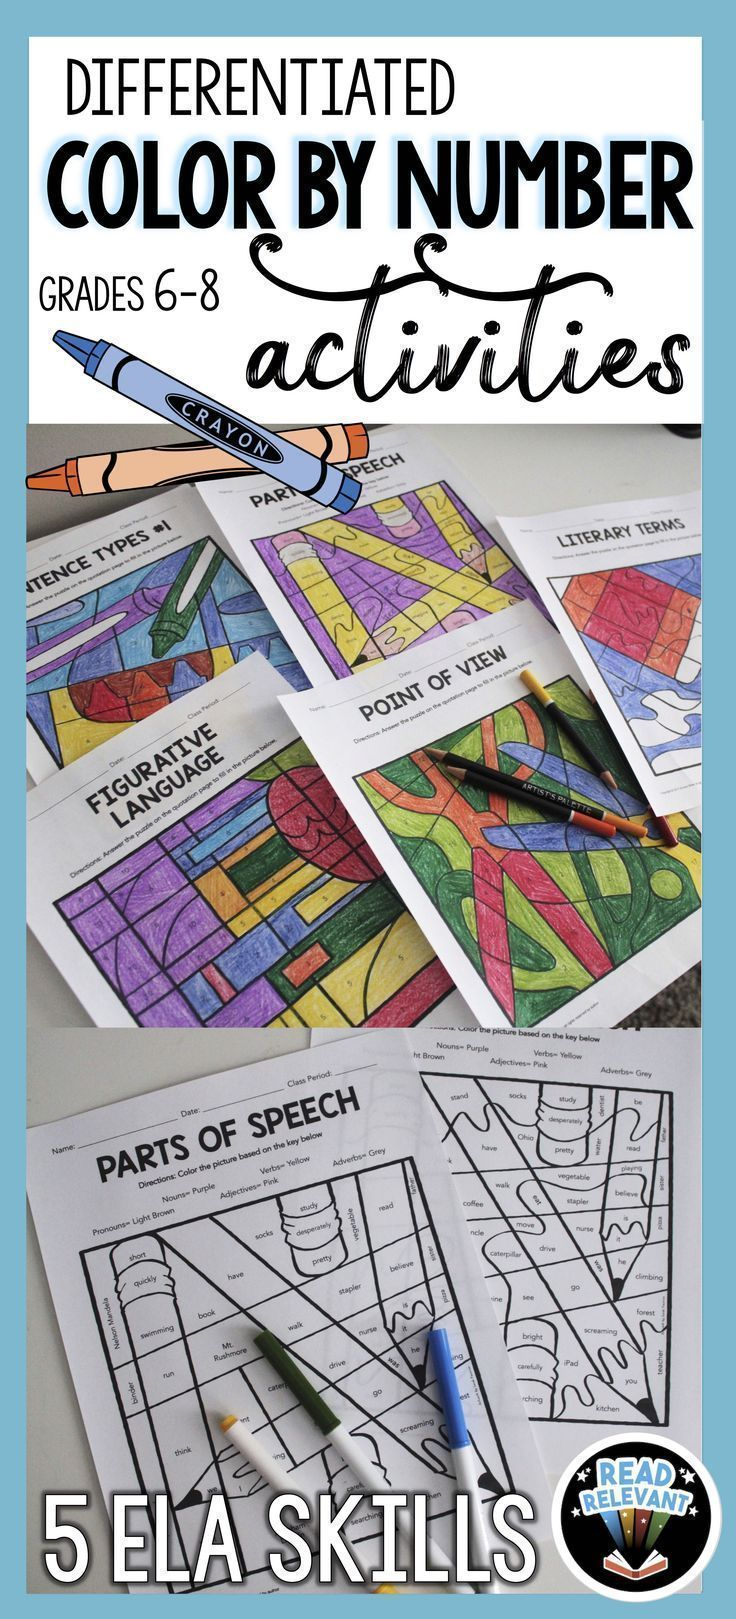 These fun color by number puzzles are great for reinforcing and reviewing the ELA skills of parts of speech, figurative language, point of view, literary terms, and sentence types. Great activities for ELA grades 6-8.